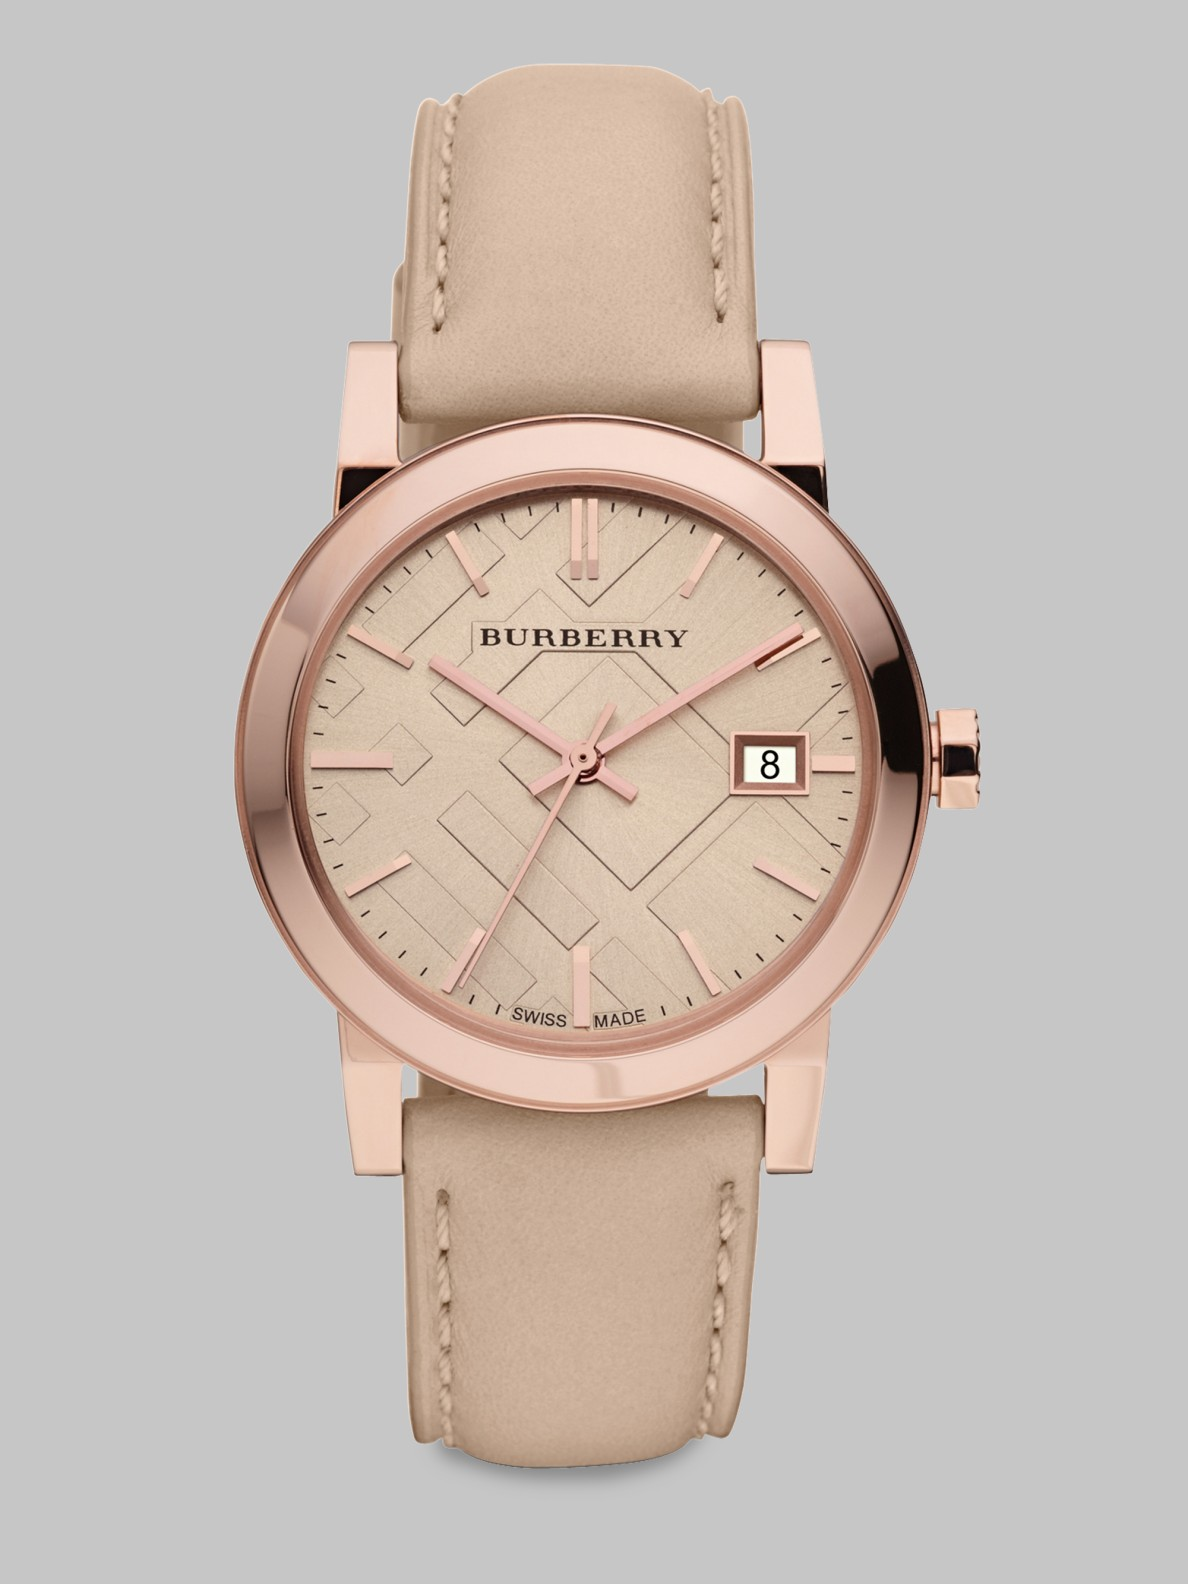 Lyst Burberry Check Stamped Leather Strap Watch Nude In